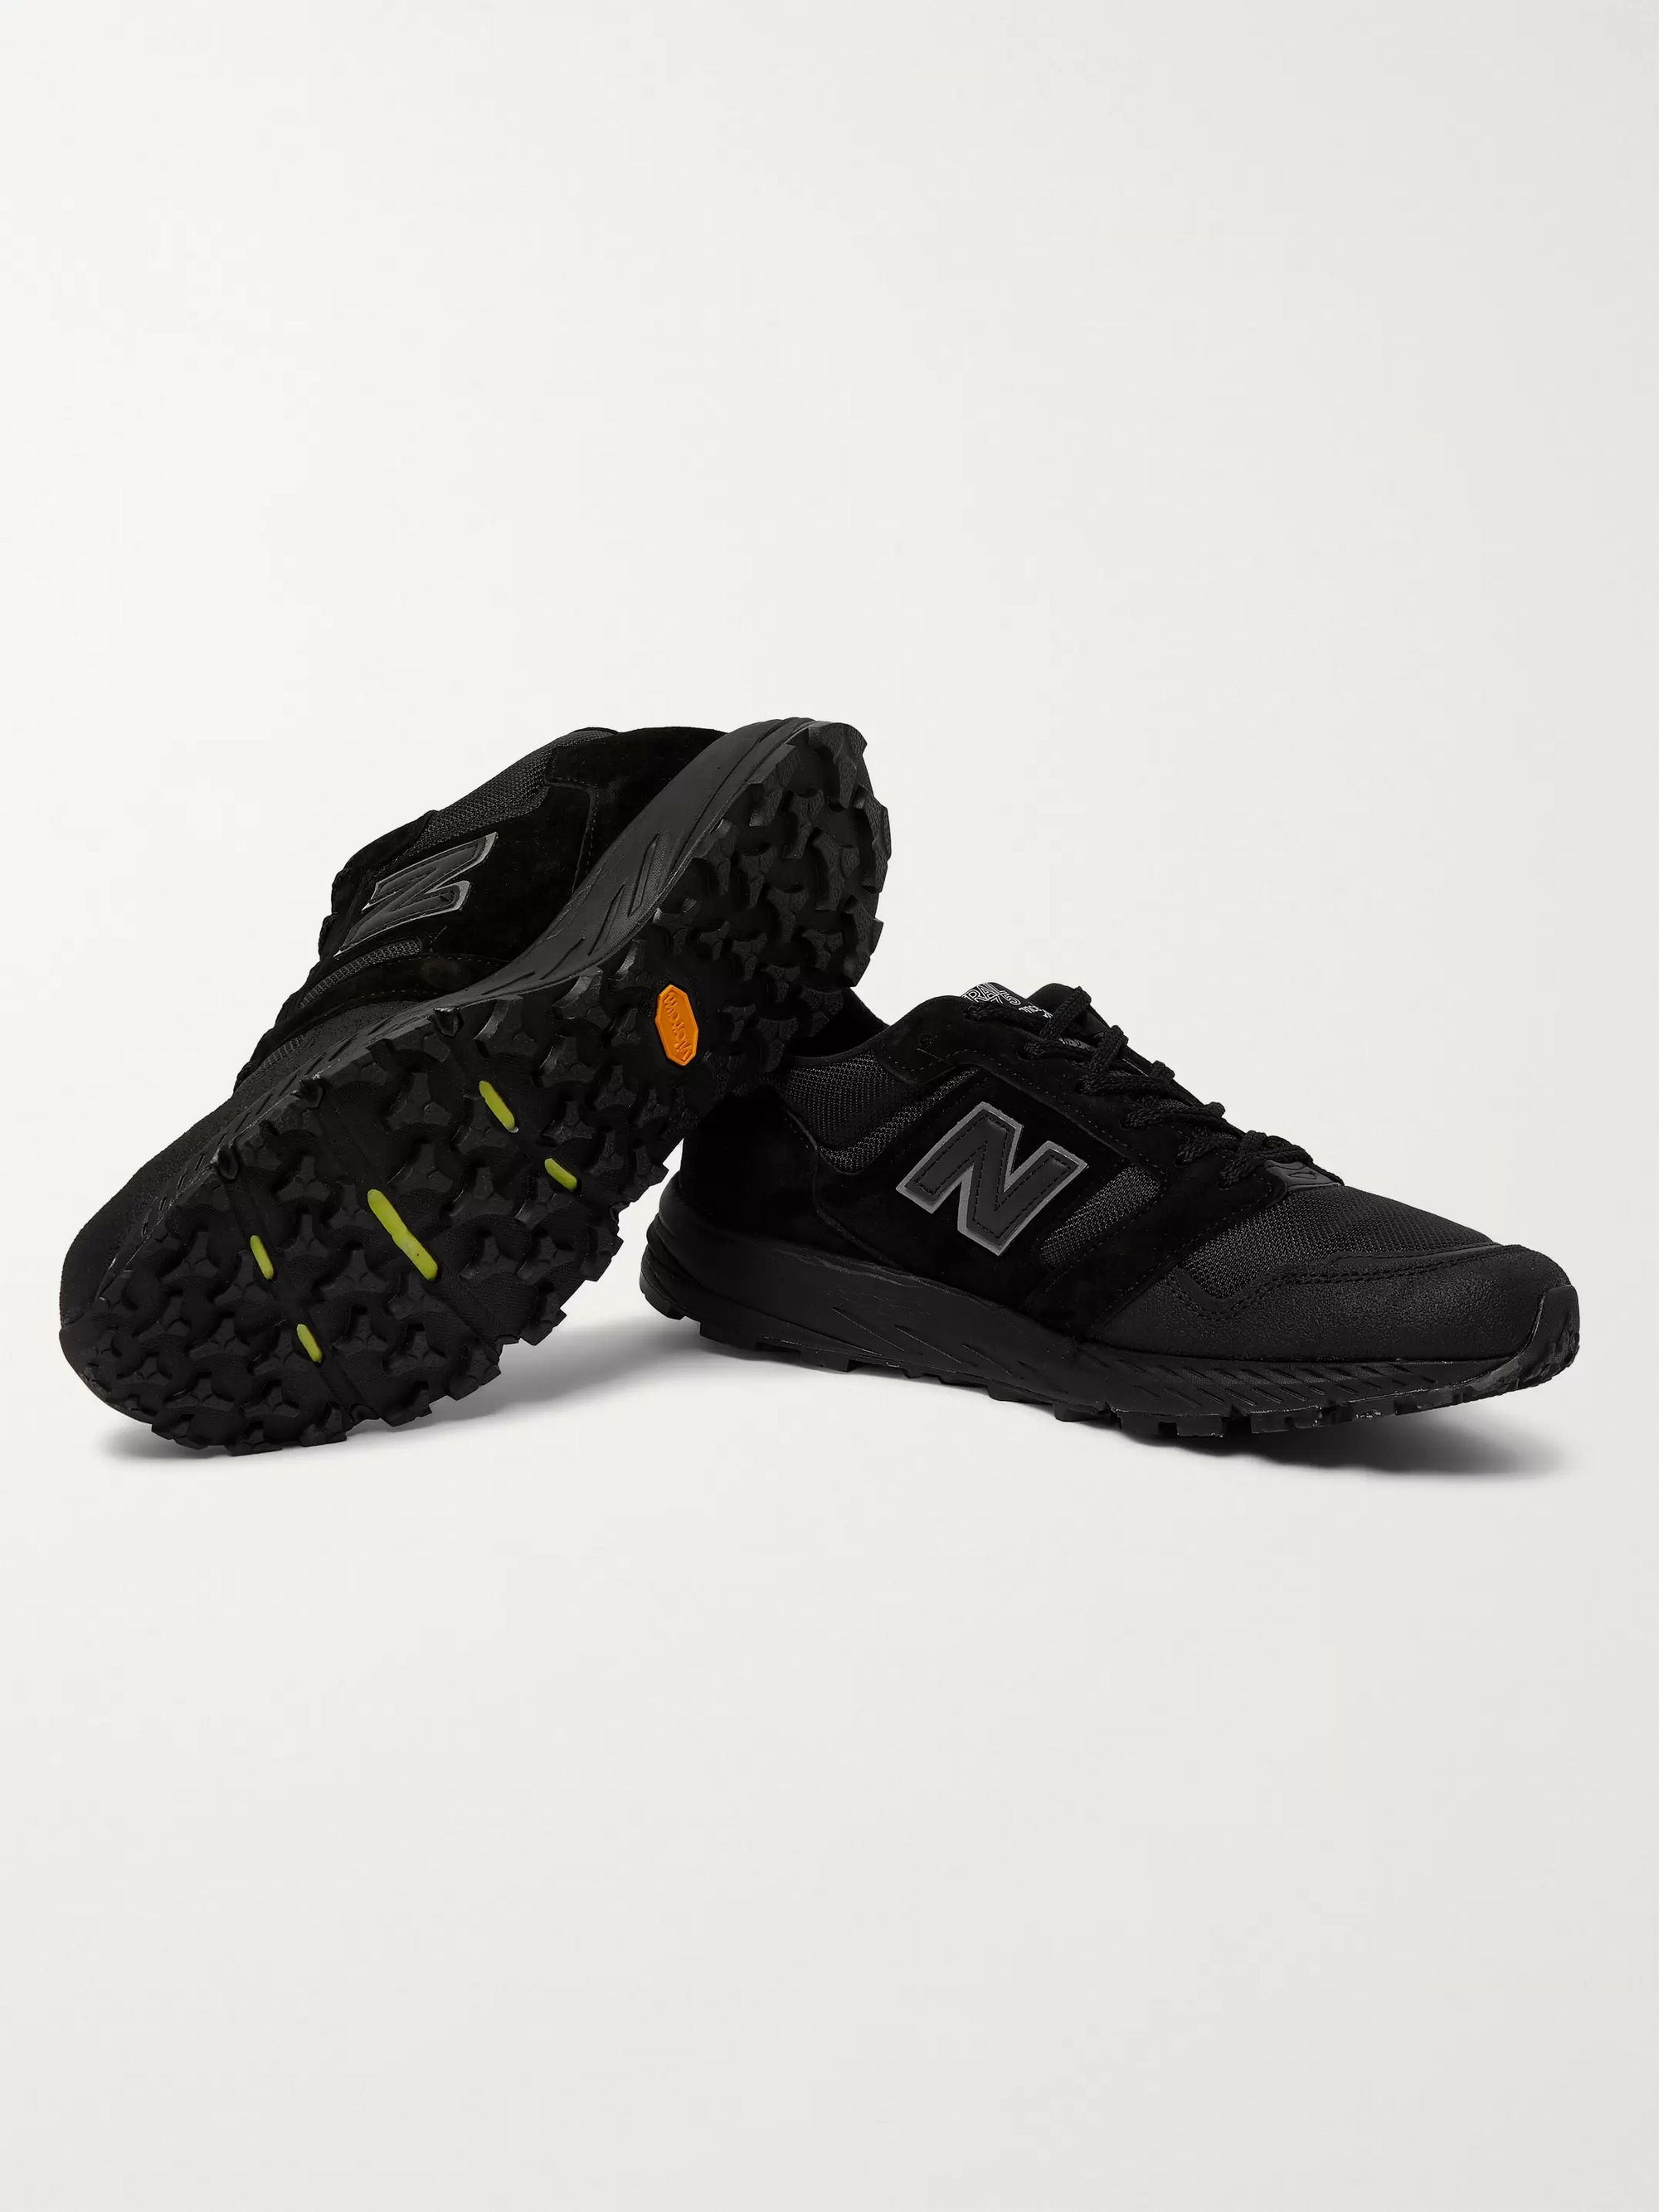 New Balance MTL575 Suede and Mesh Sneakers